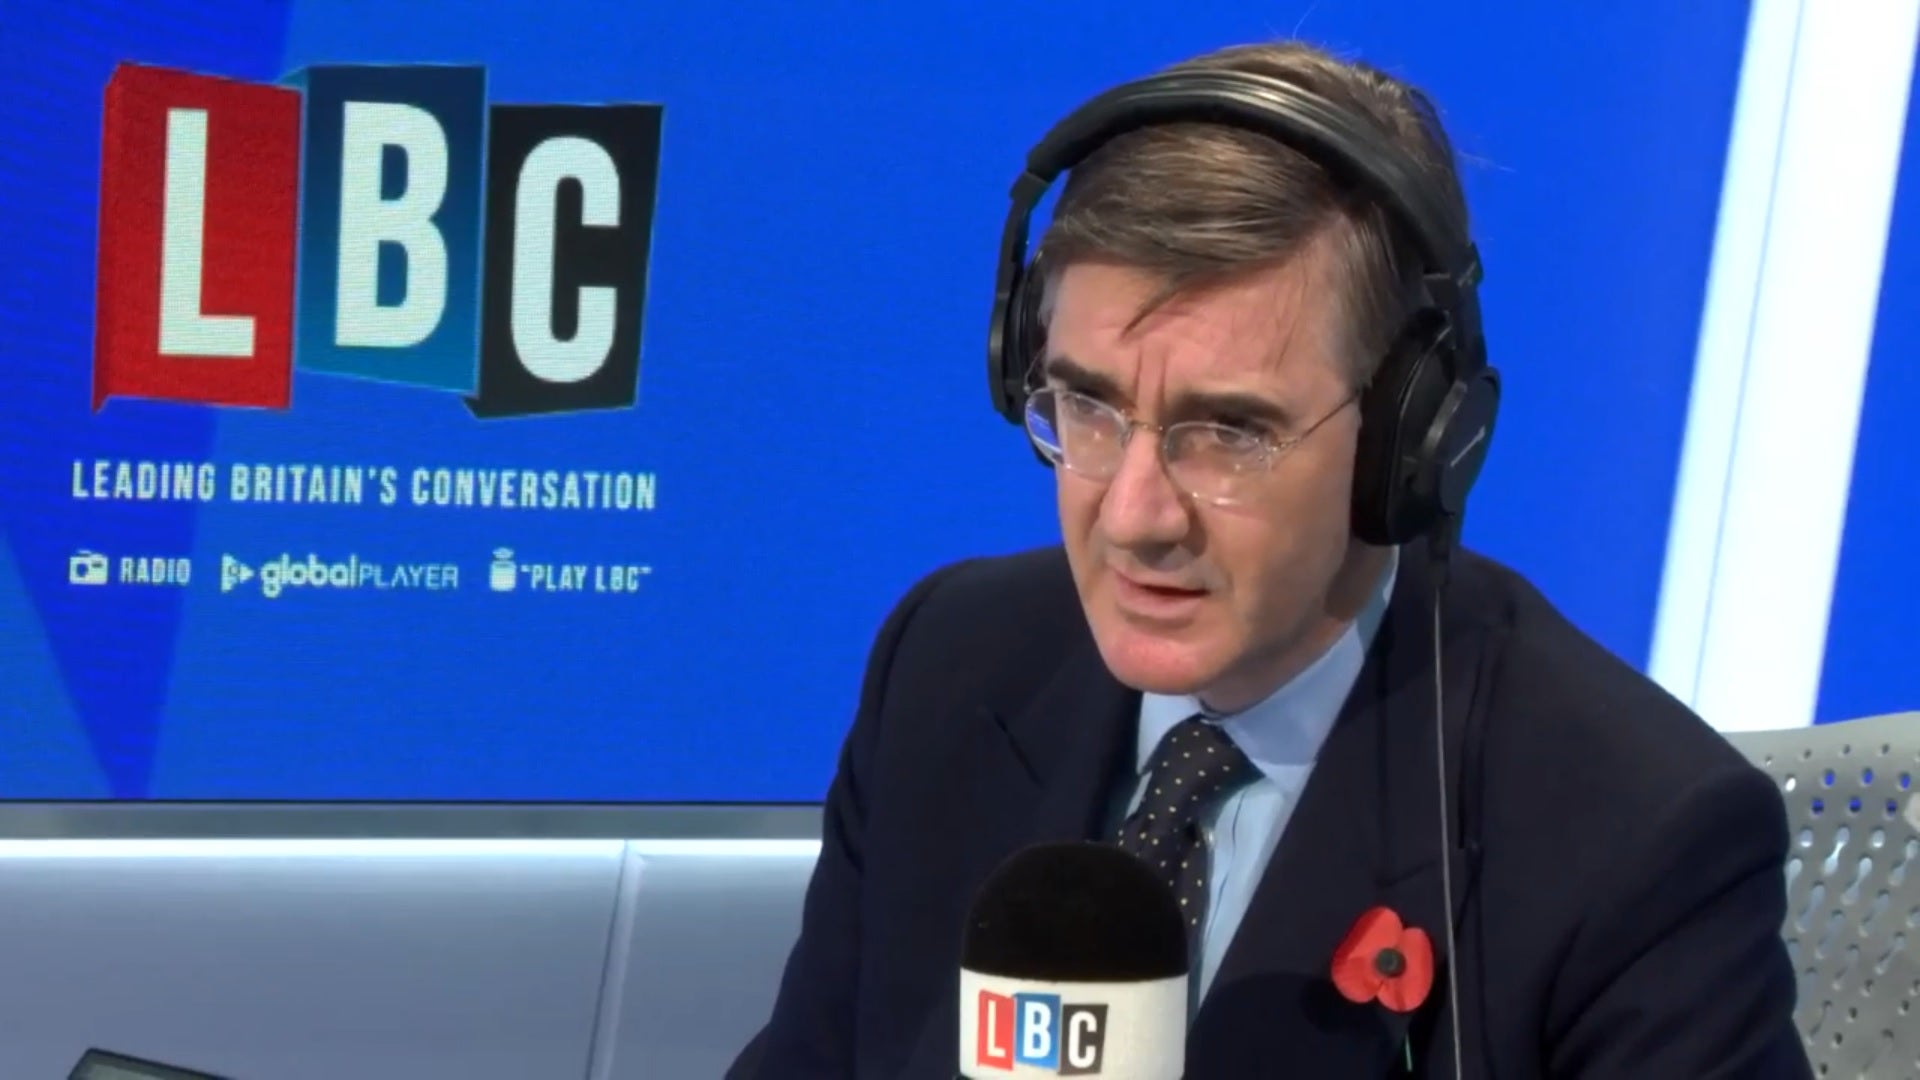 """Jacob Rees-Mogg says Grenfell fire victims lacked """"common sense"""" by obeying Fire Brigade"""